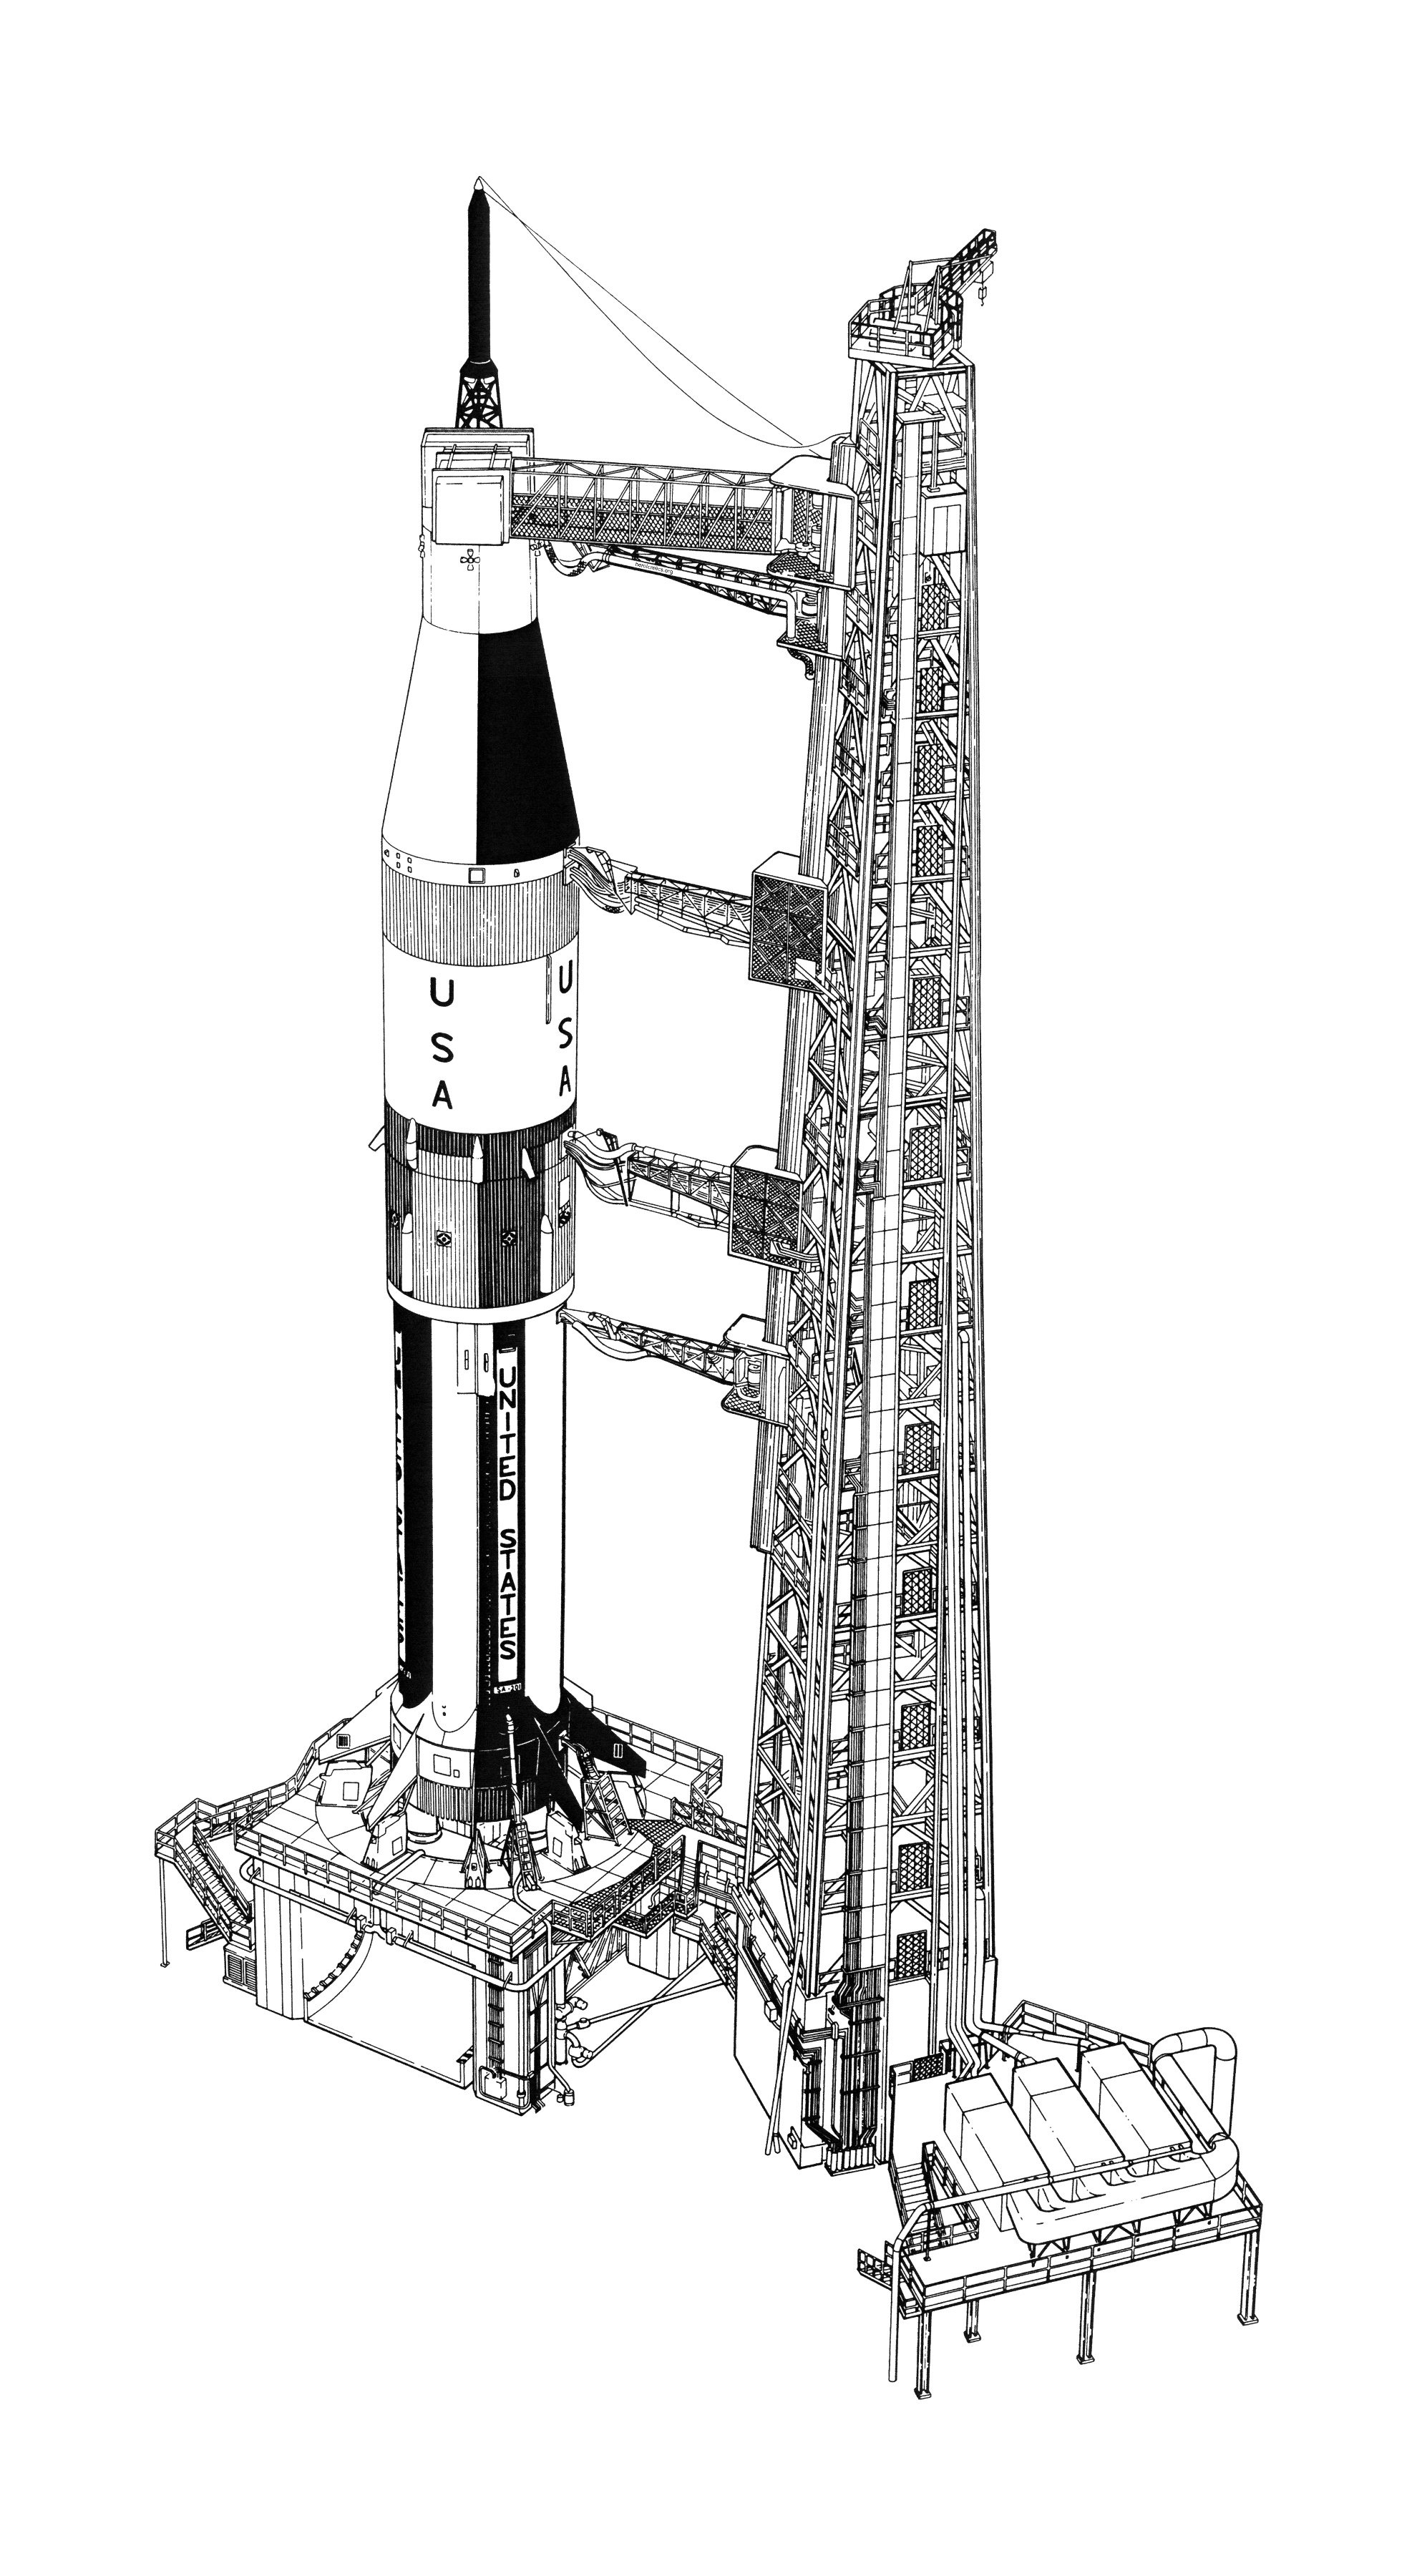 General Saturn IB Diagrams